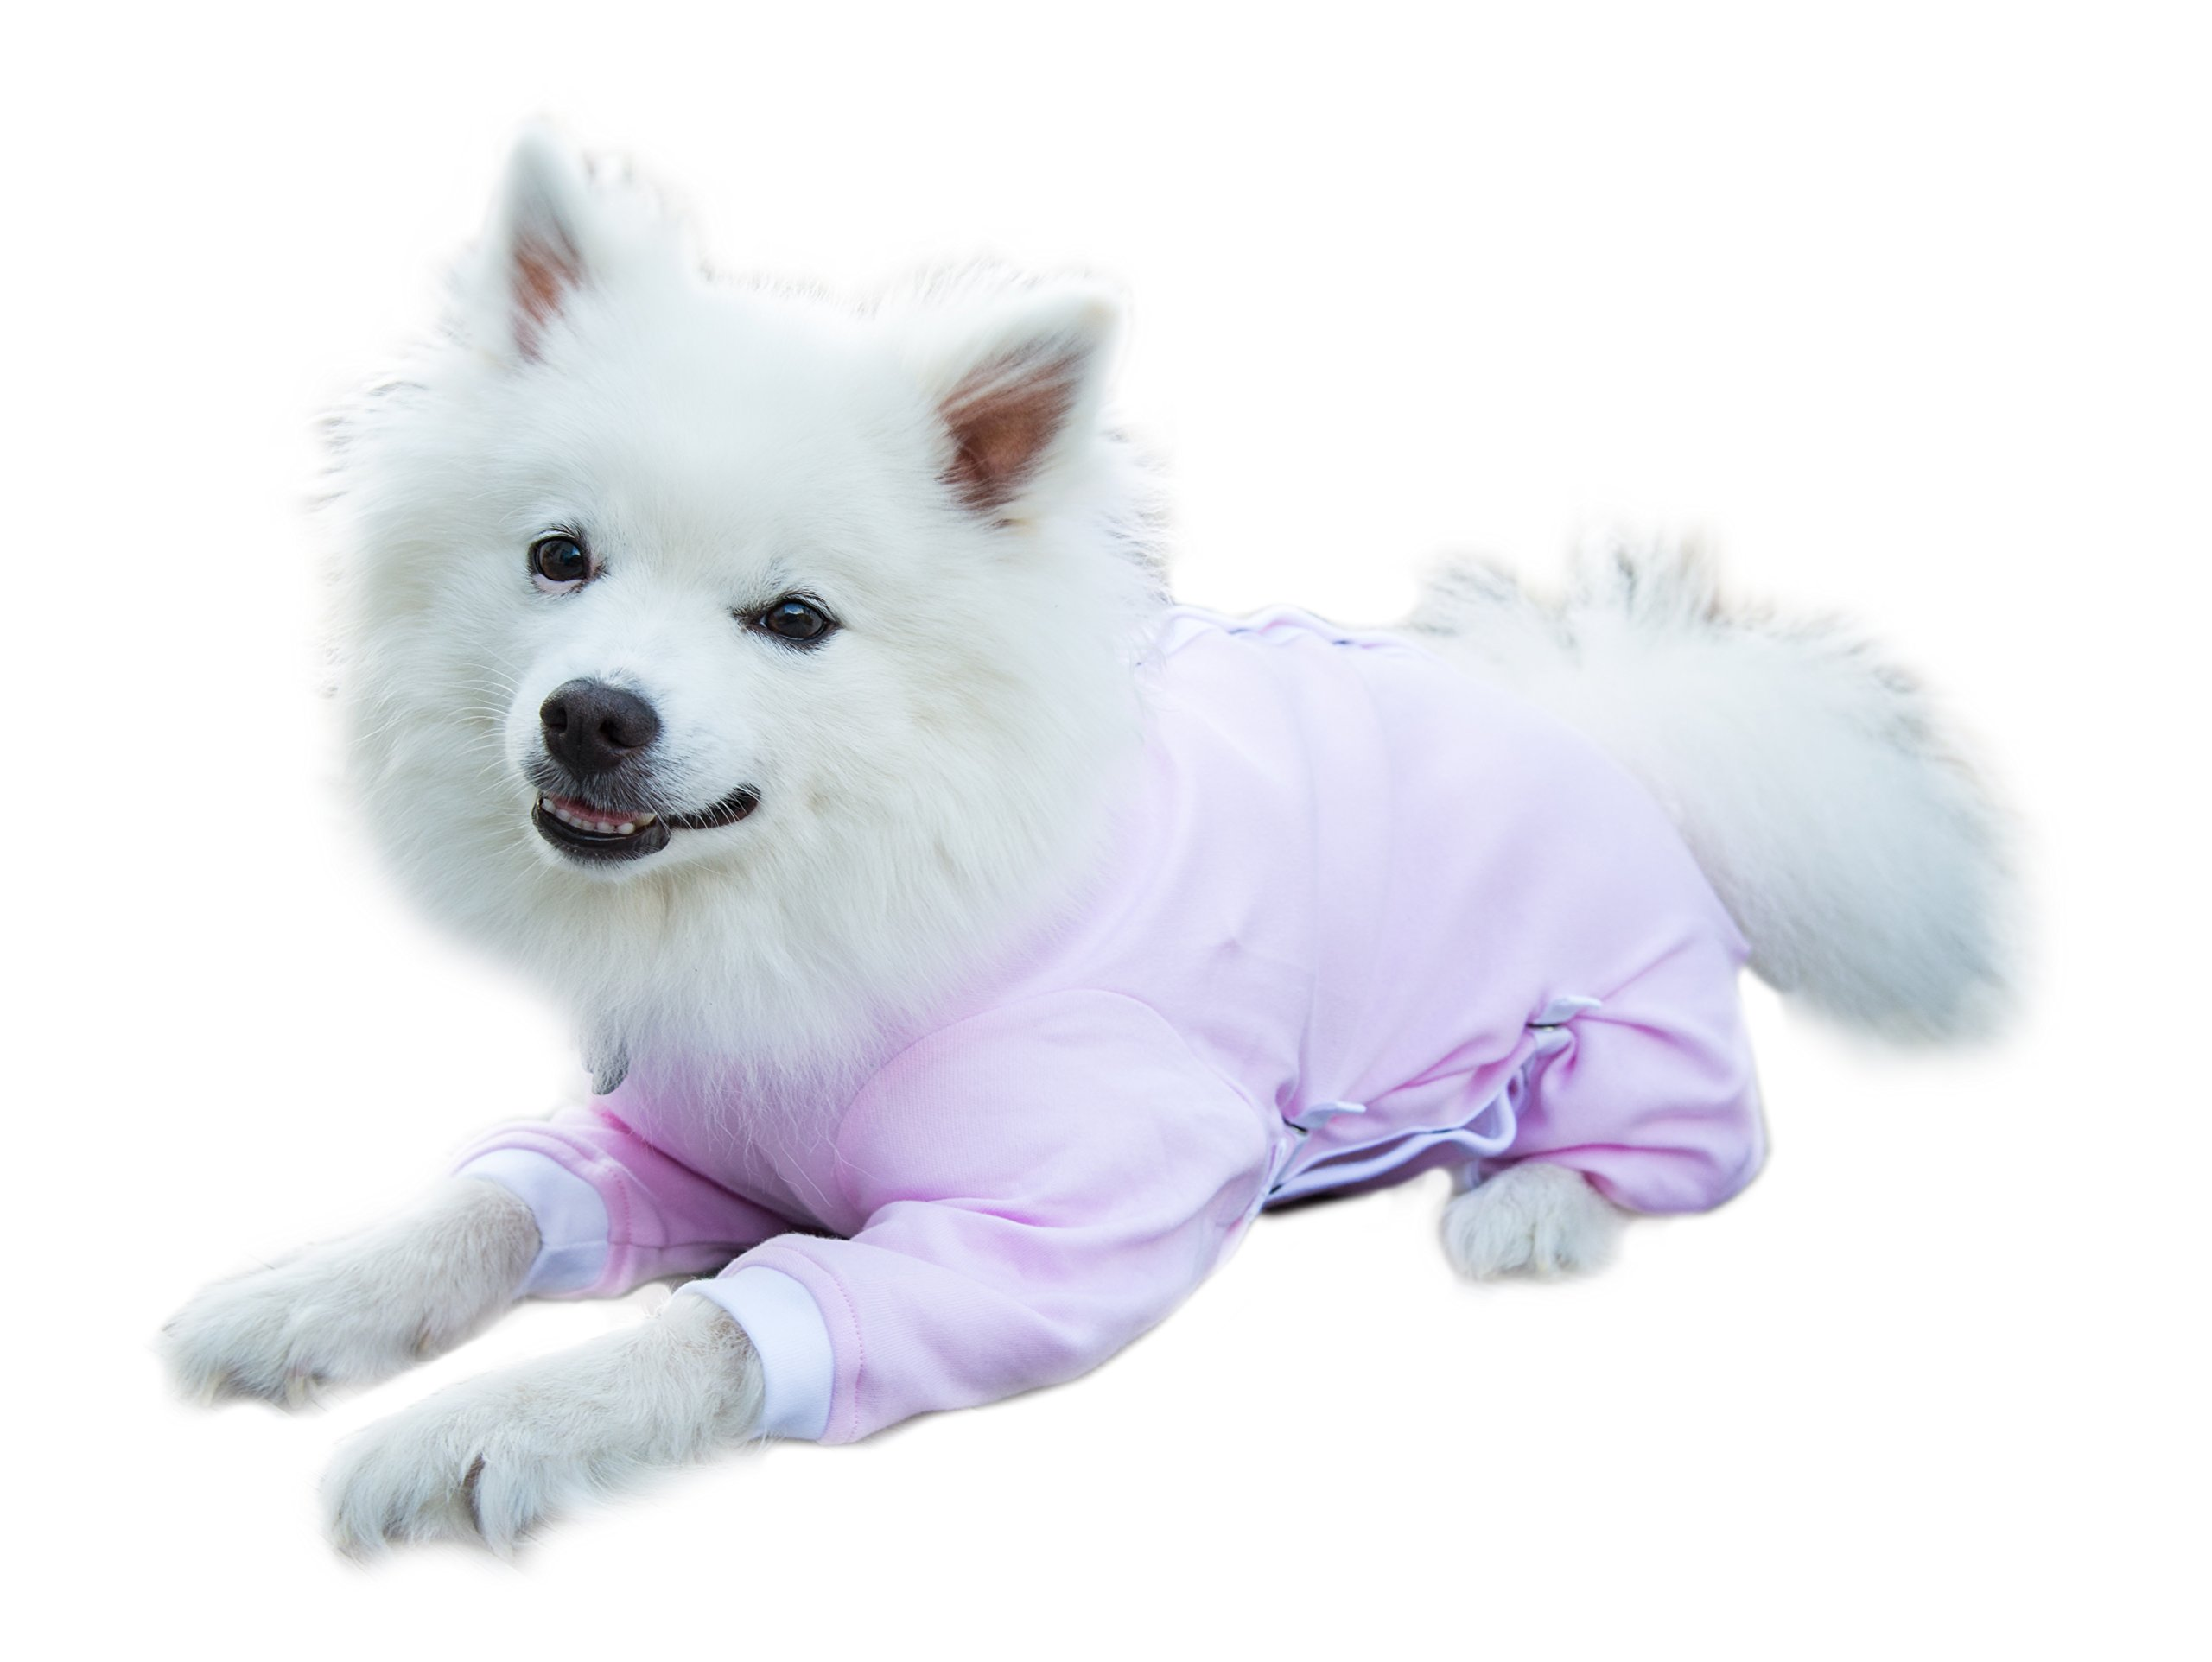 Cover Me by Tui Adjustable Fit Step-into with Short Sleeve for Pets, Small, Pink